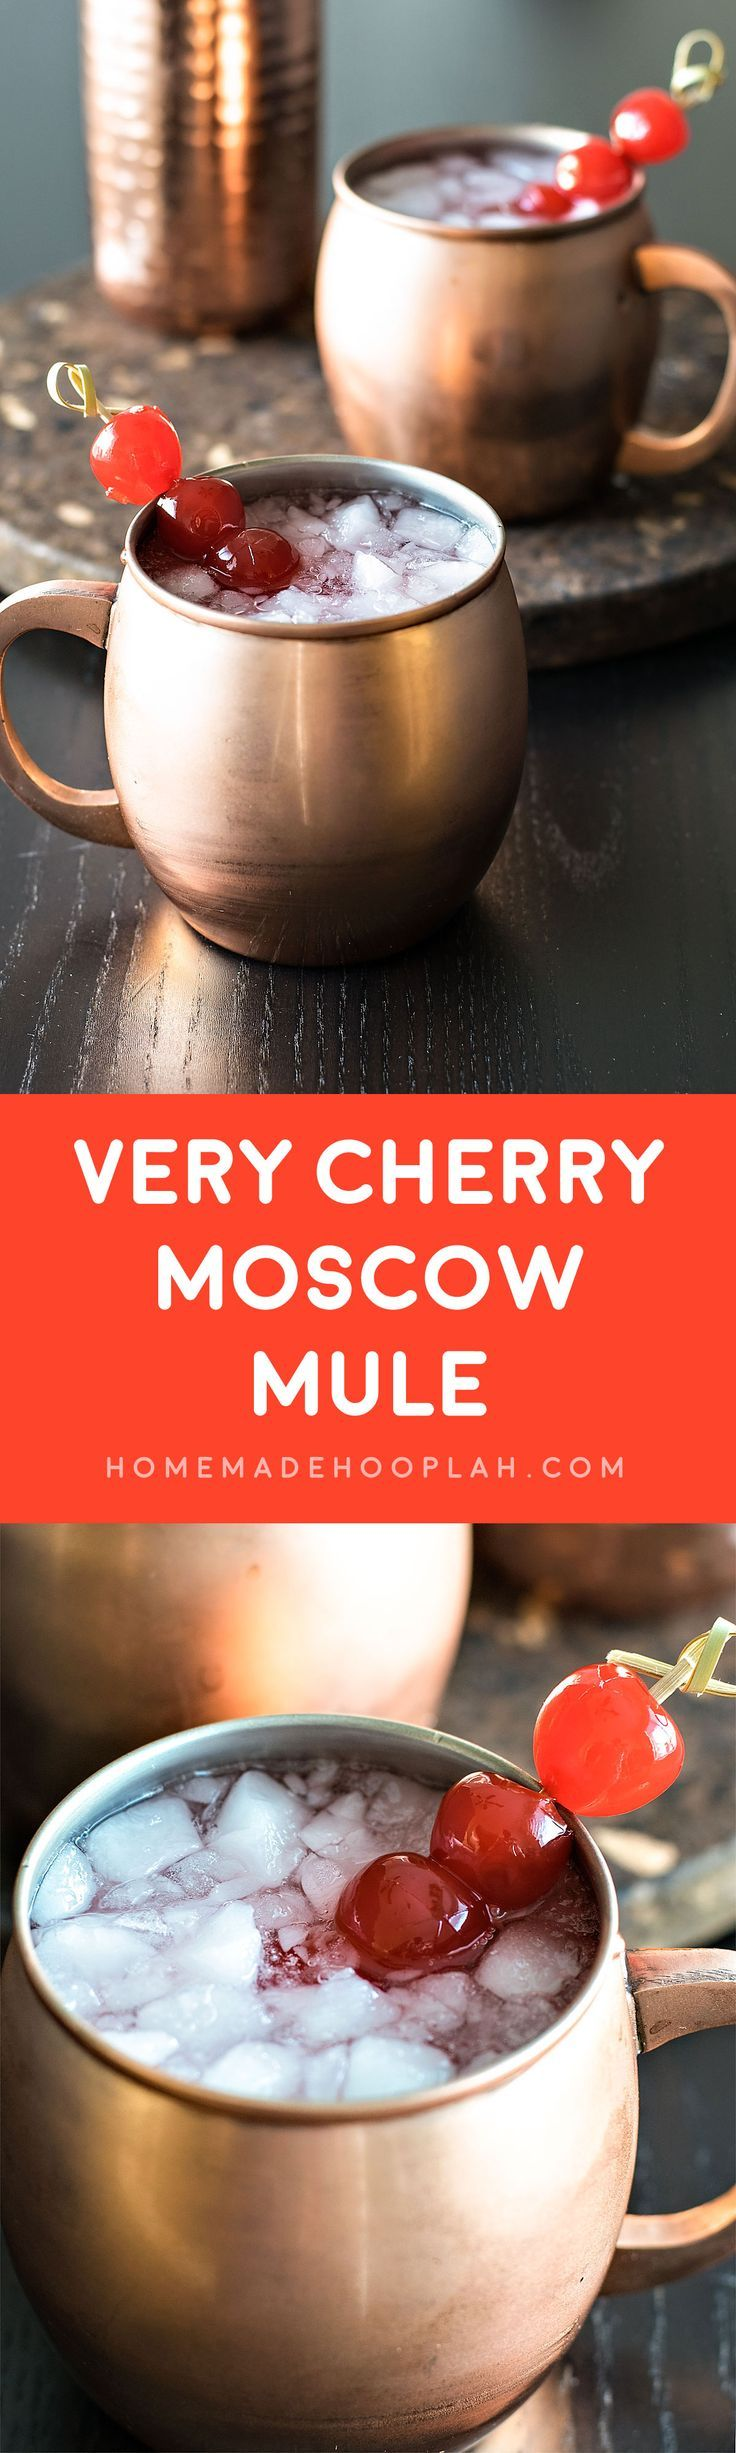 Very Cherry Moscow Mule! A cherry twist on the classic (and popular!) moscow mule, made with cherry vodka and maraschino cherries